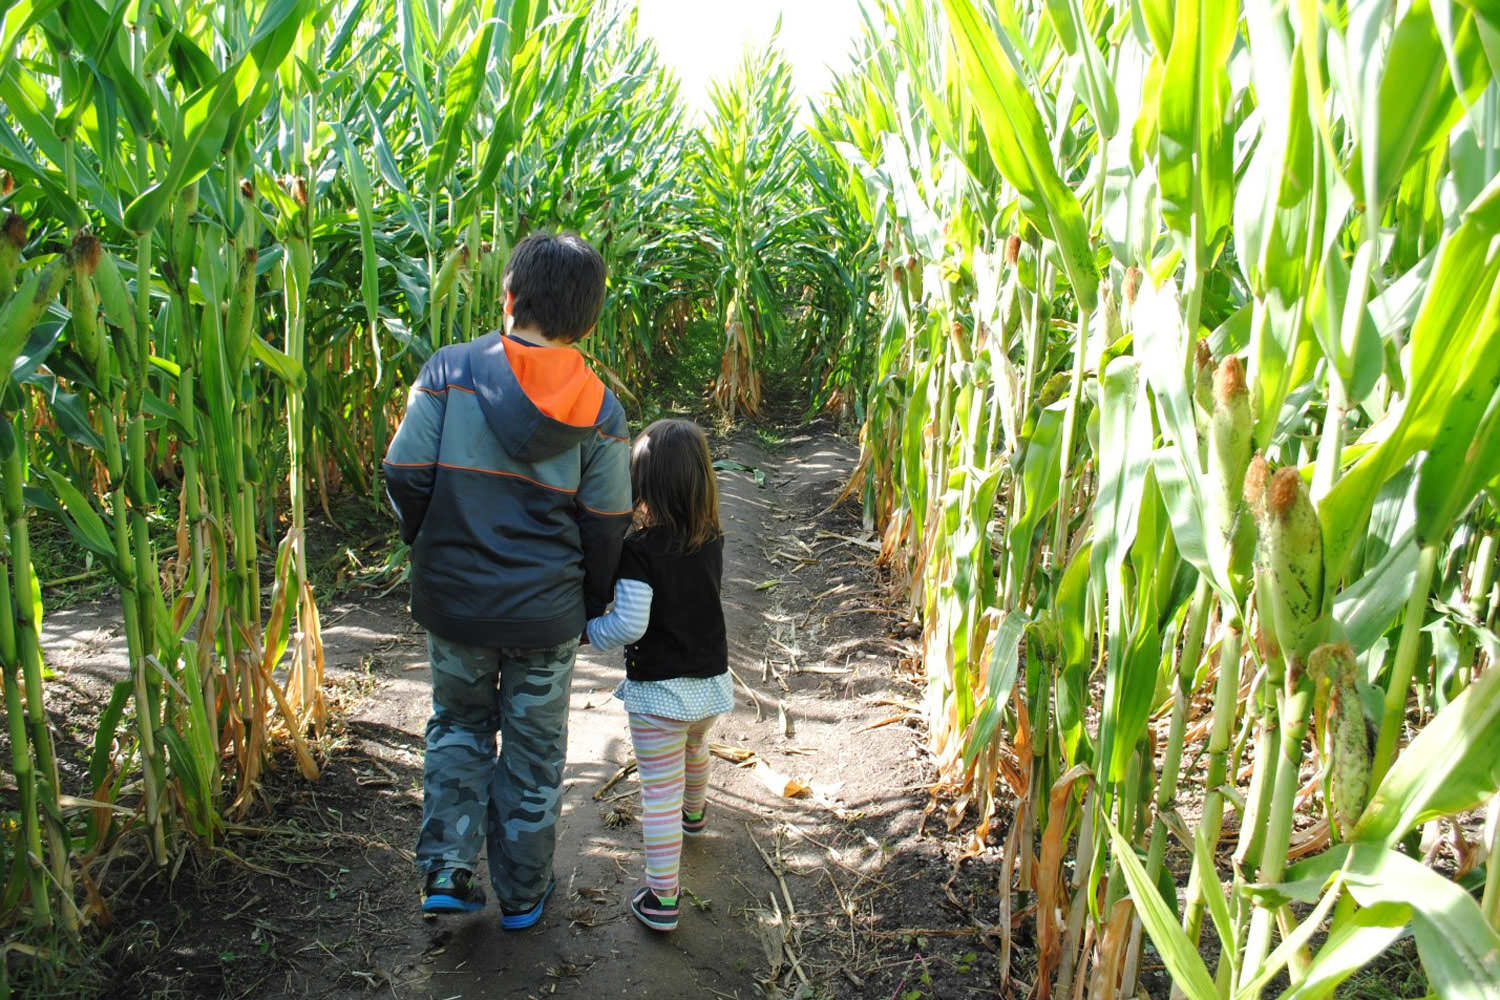 Two young children walk through a corn maze taller than them.